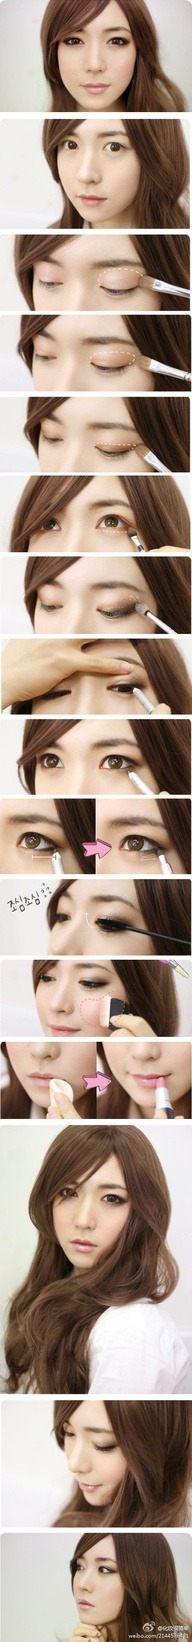 asian natural make up~~~~ reblog from https://pinterest.com/kstargoods/korean-makeup-self-makeup/